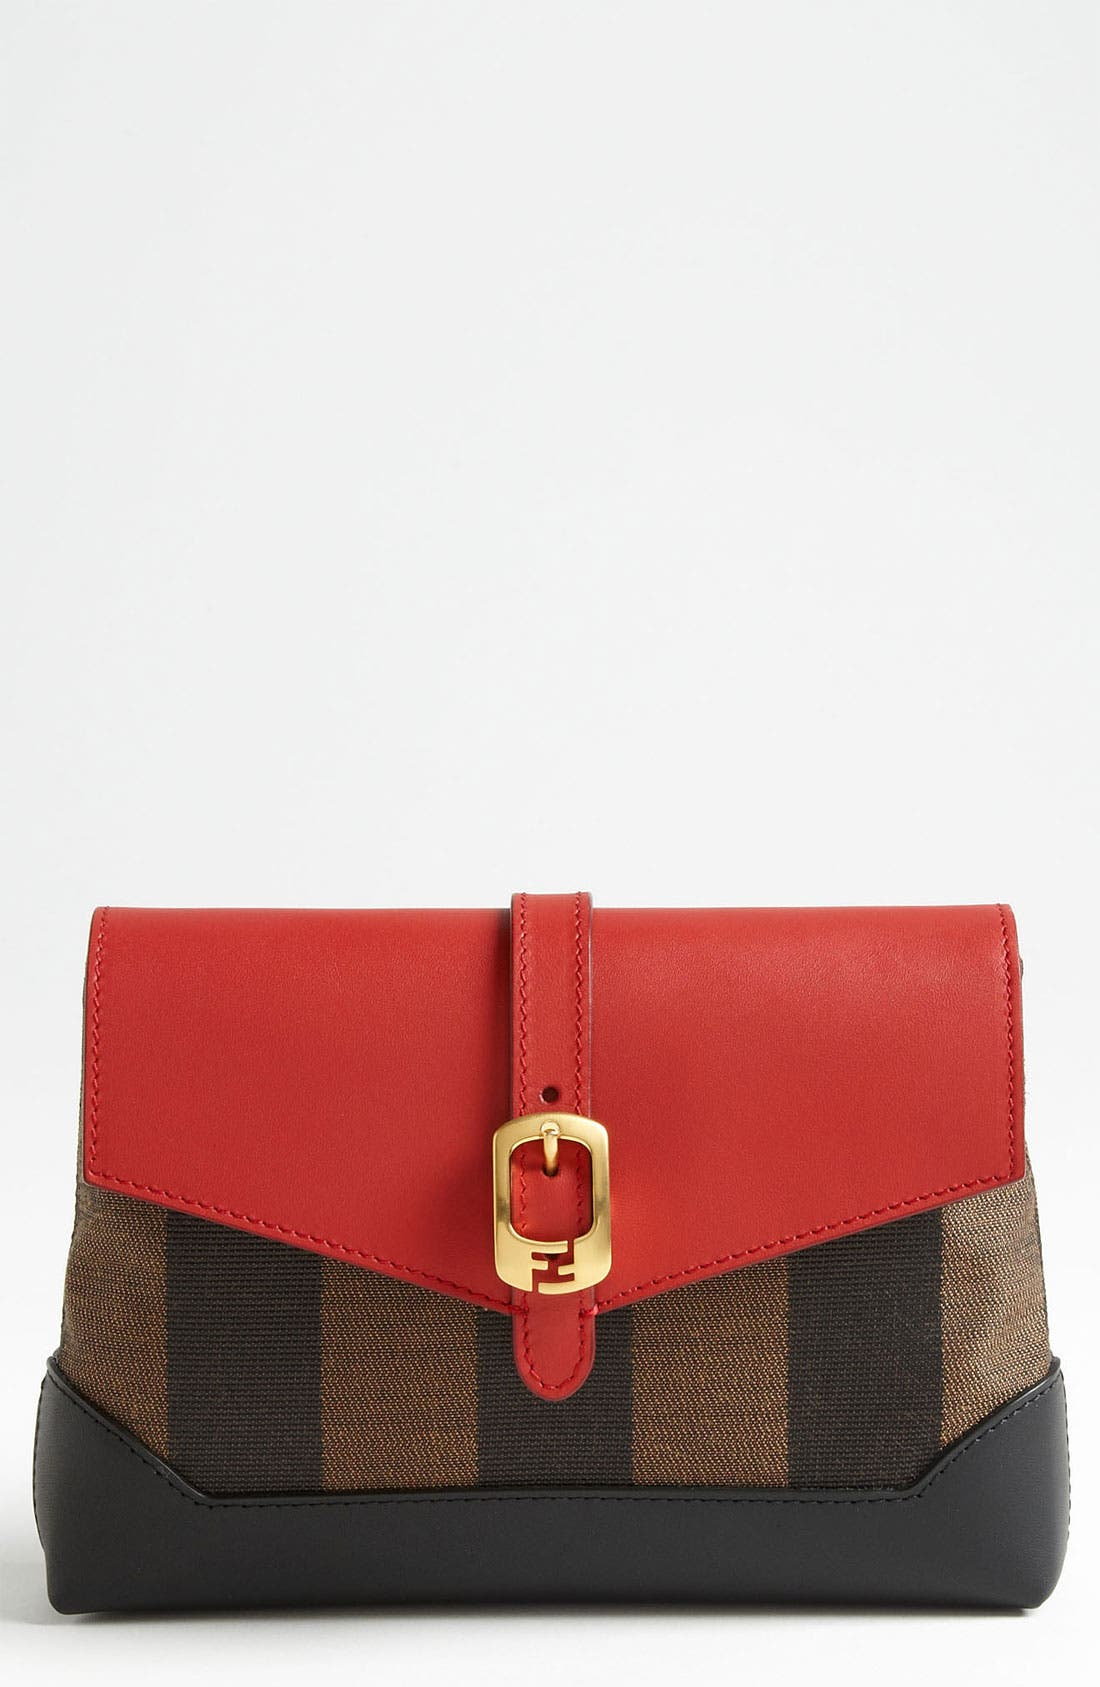 Alternate Image 1 Selected - Fendi 'Pequin - Mini' Crossbody Bag